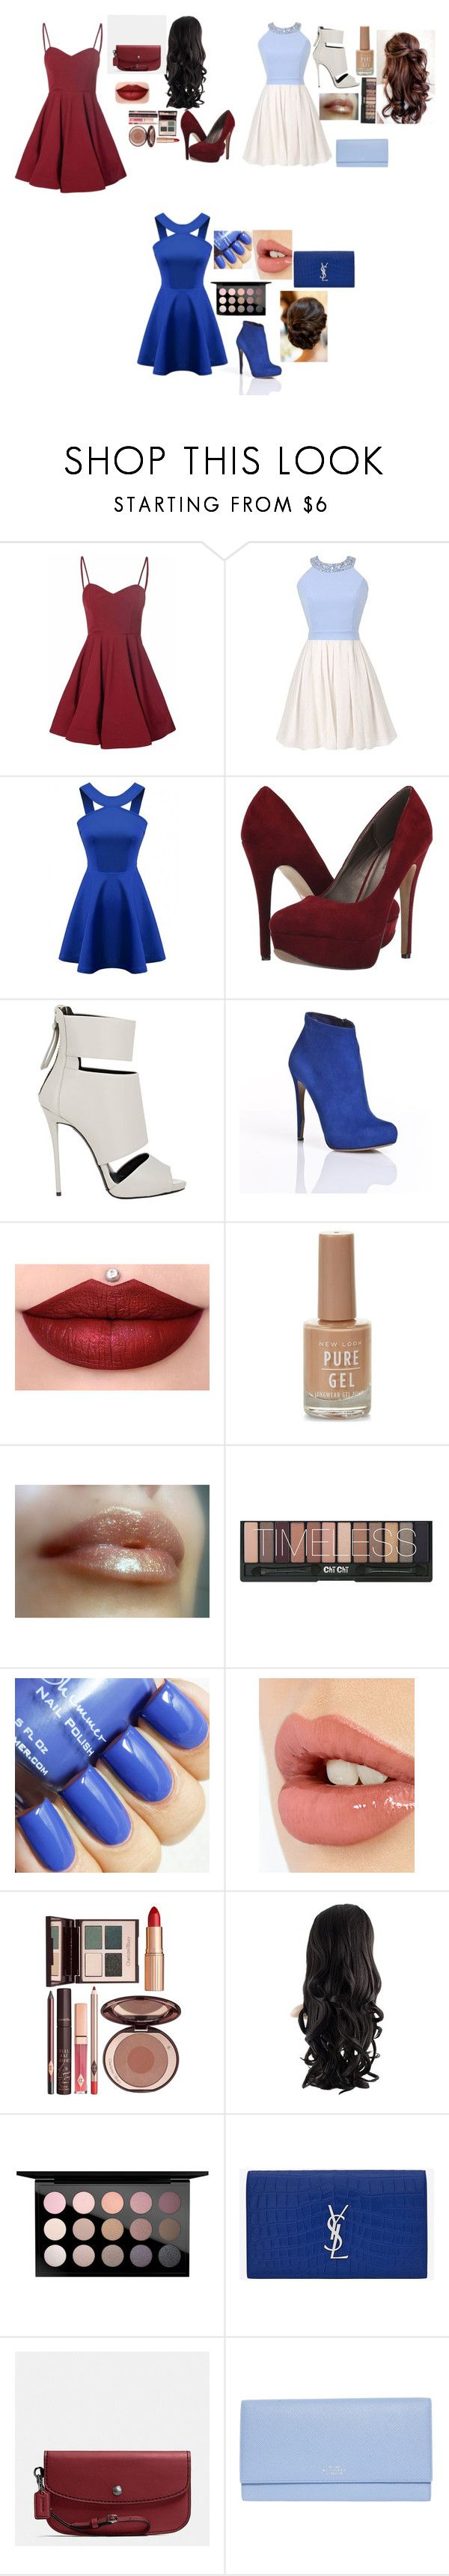 """An elegant Look."" by kayandzay on Polyvore featuring Glamorous, Michael Antonio, Giuseppe Zanotti, Nicholas Kirkwood, Charlotte Tilbury, MAC Cosmetics, Yves Saint Laurent, Coach and Smythson"